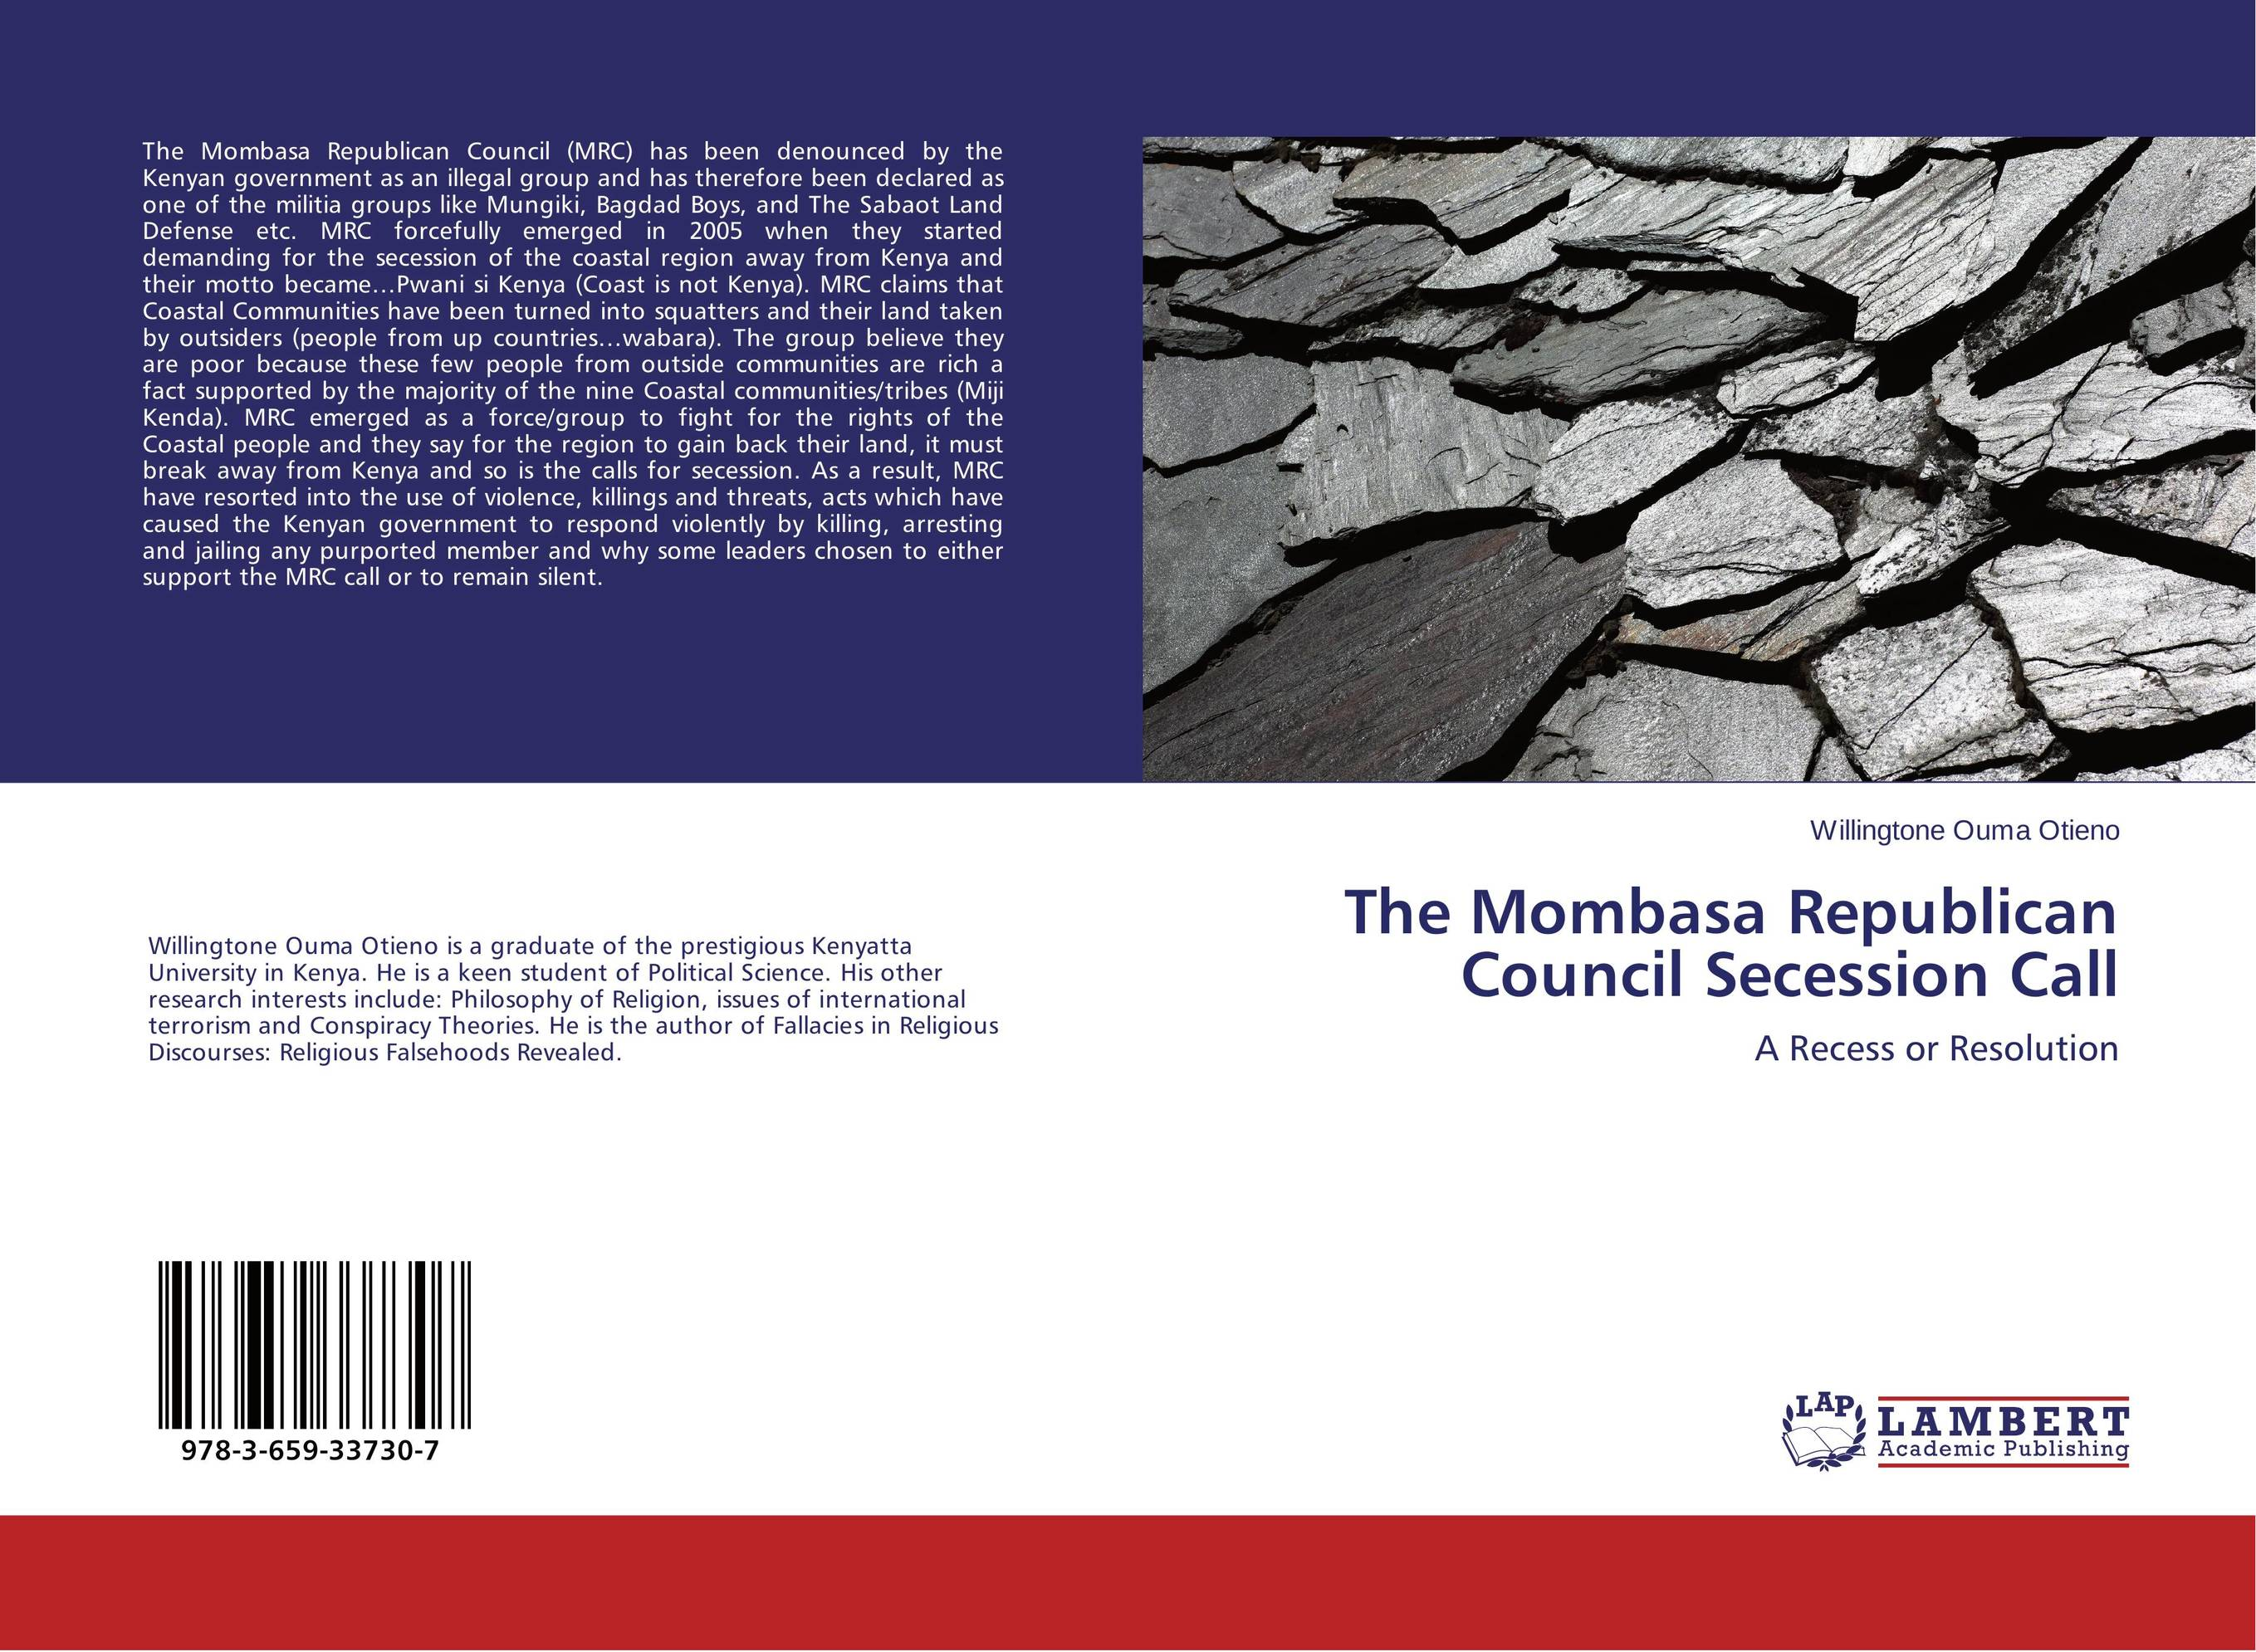 an overview of the mombasa republican council The mombasa republican council was dormant until 2008, when it first raised claims that mombasa should secede from kenya to become an independent state, they argued that secession would liberate the people of the coast province from marginalization by the successive governments in kenya.